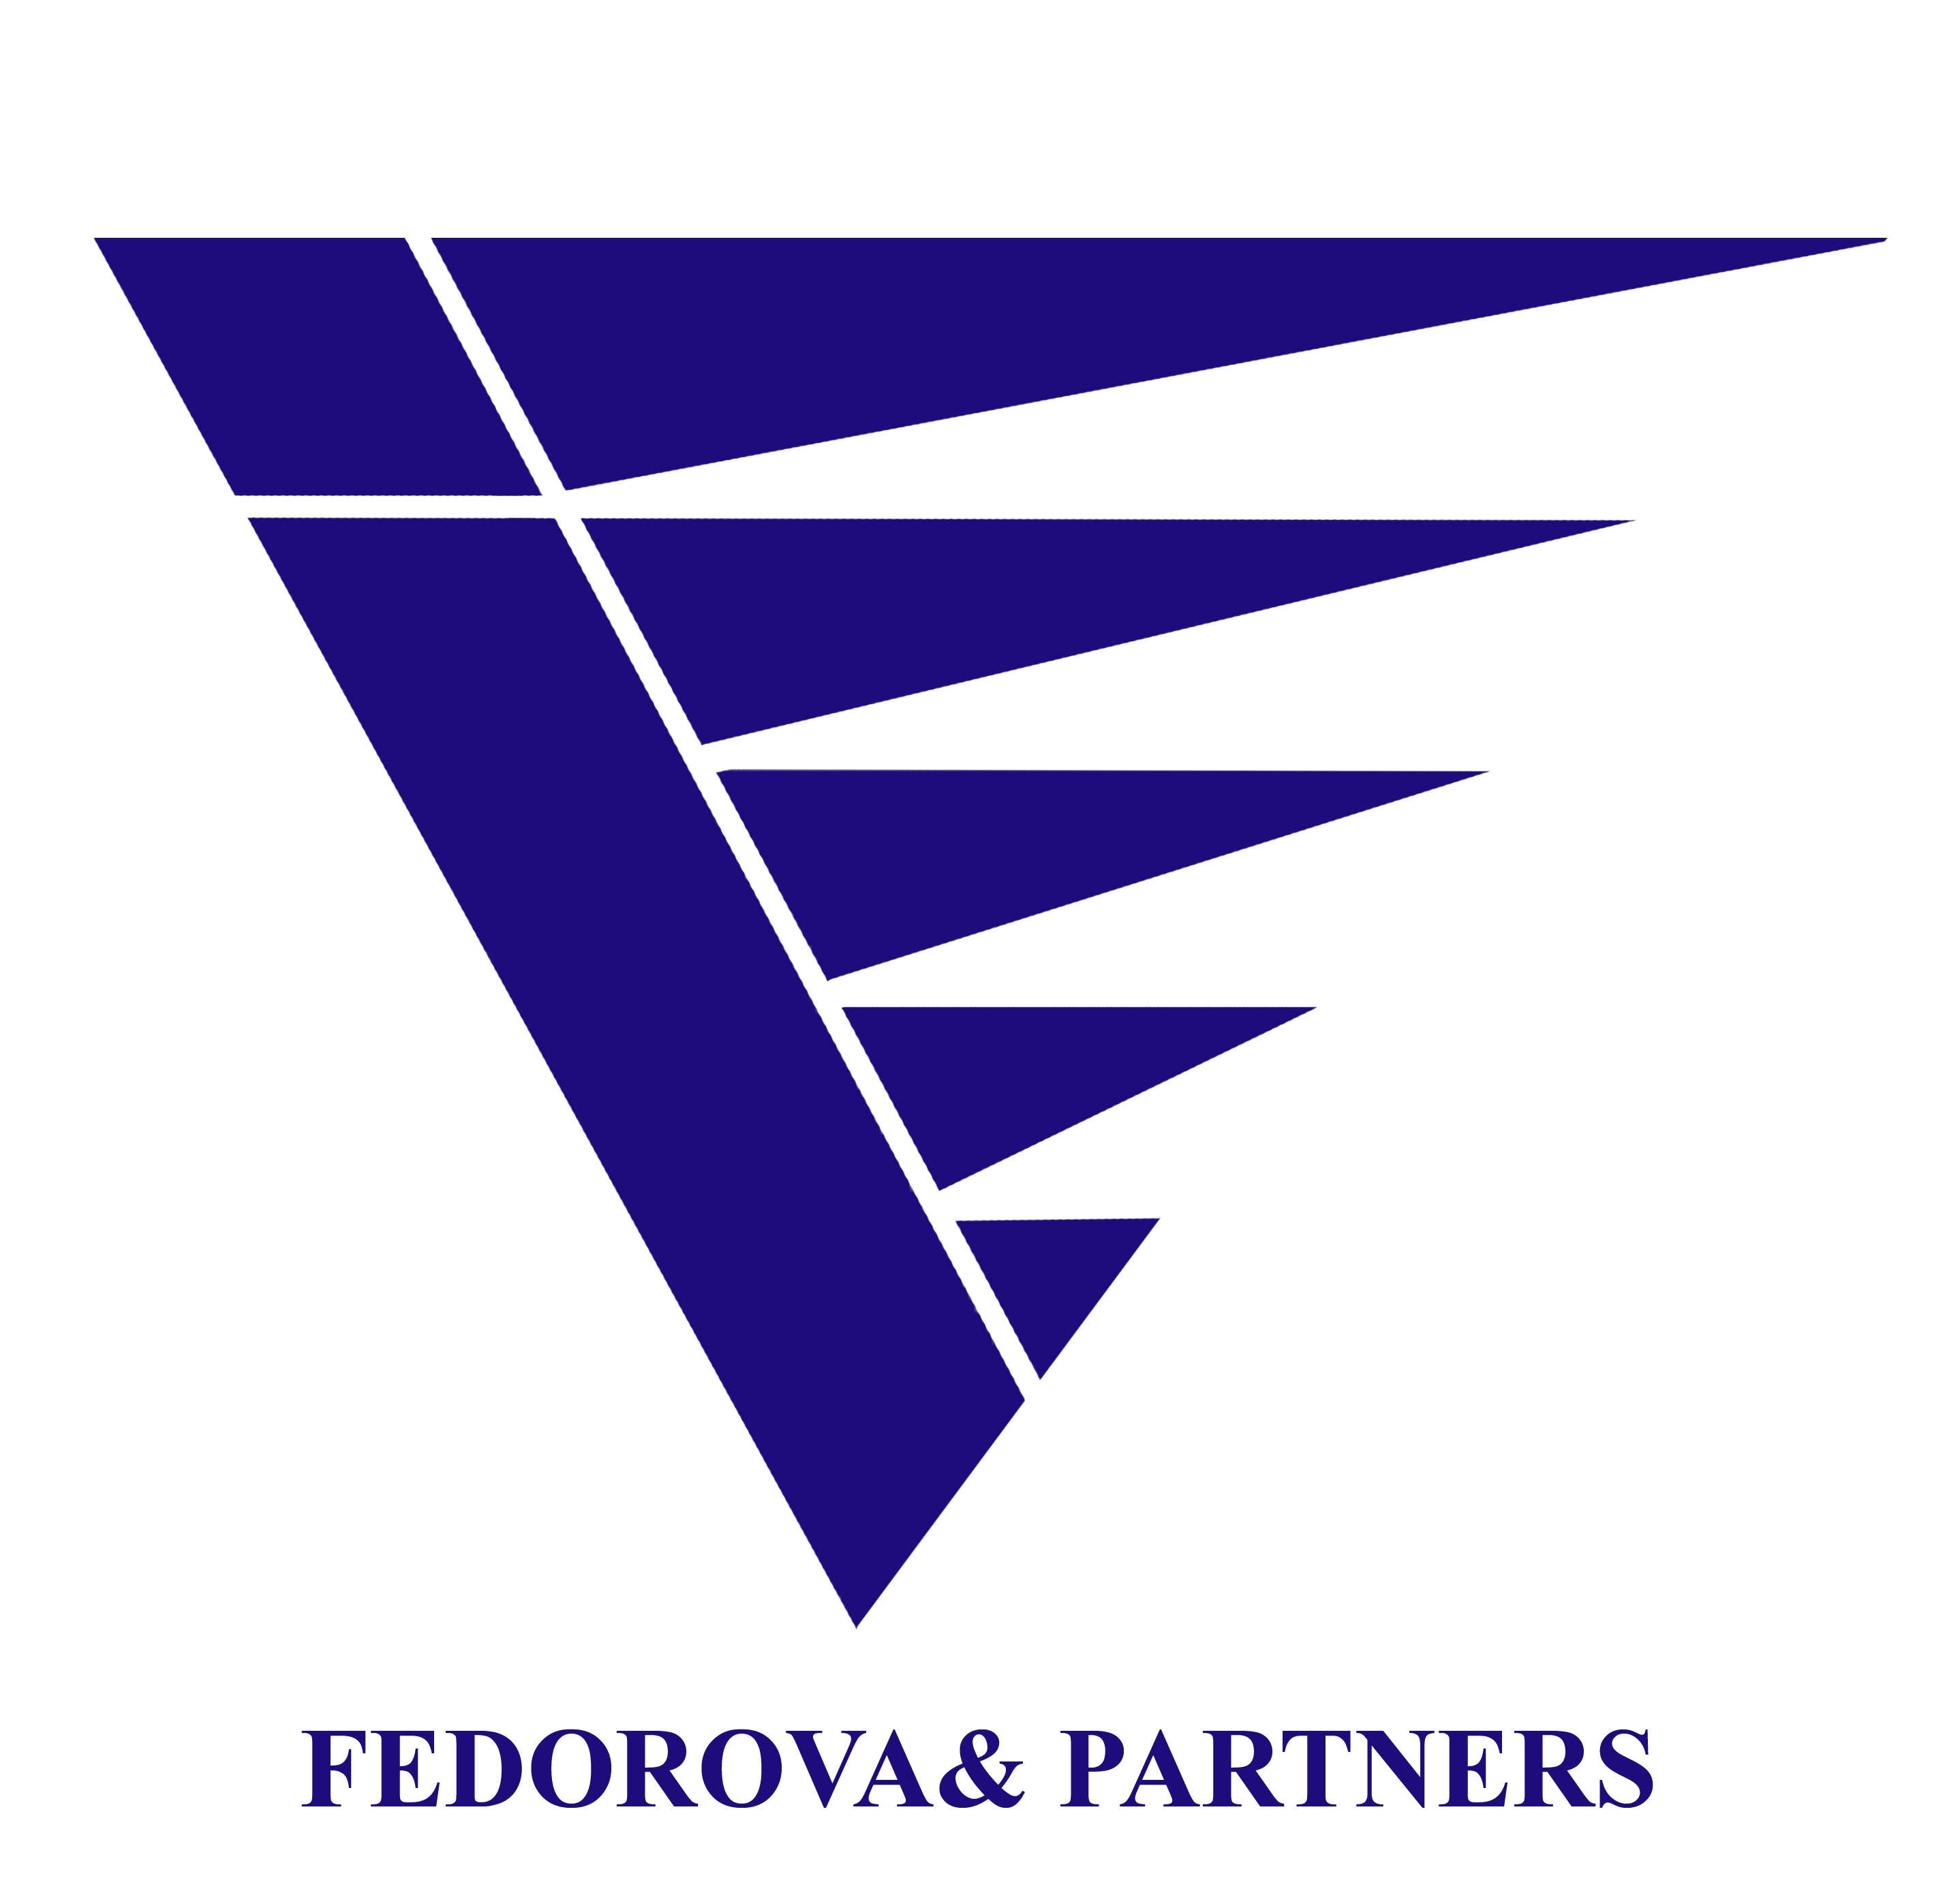 FEDOROVA & PARTNERS, Trademark and Patent Attorneys